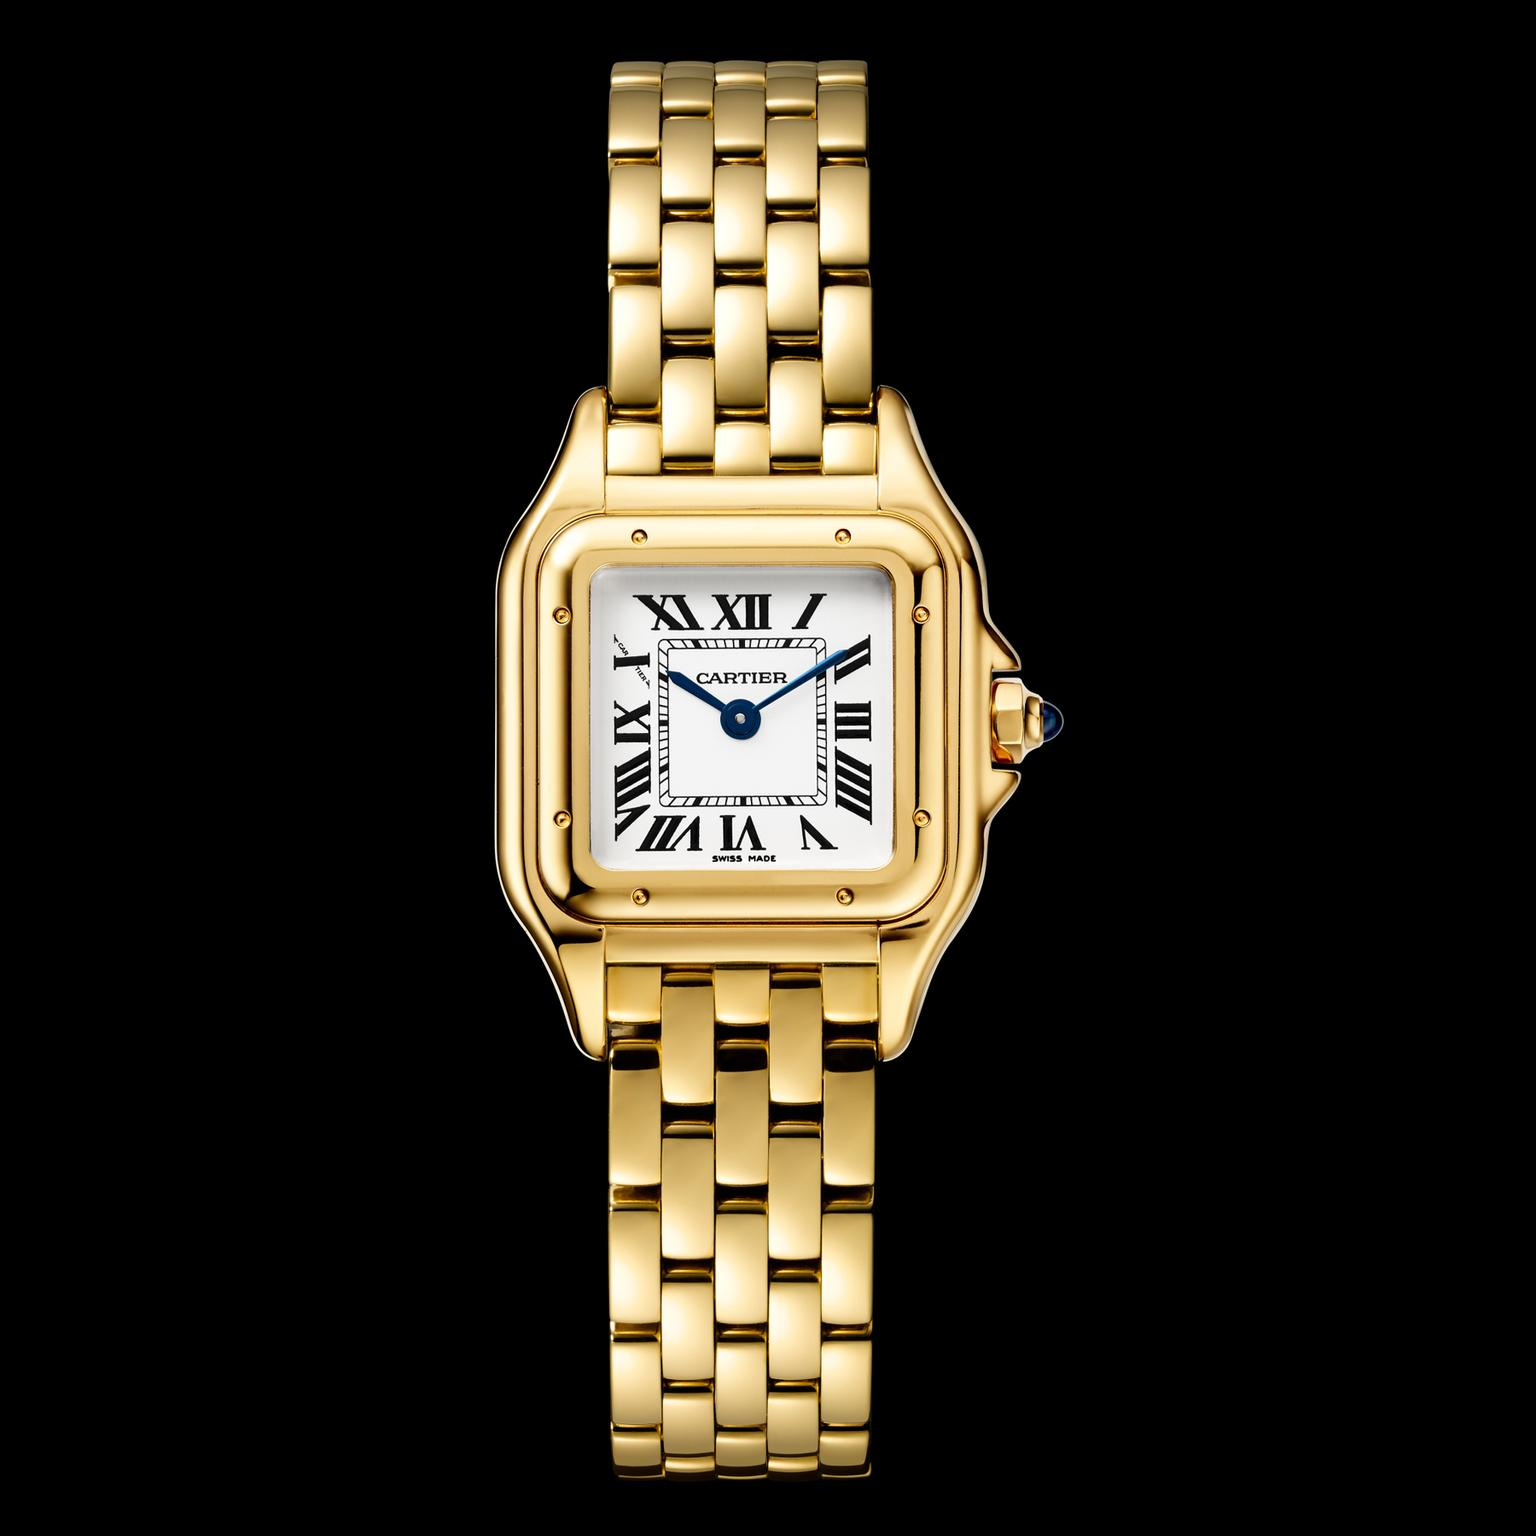 Panthère de Cartier watch in yellow gold